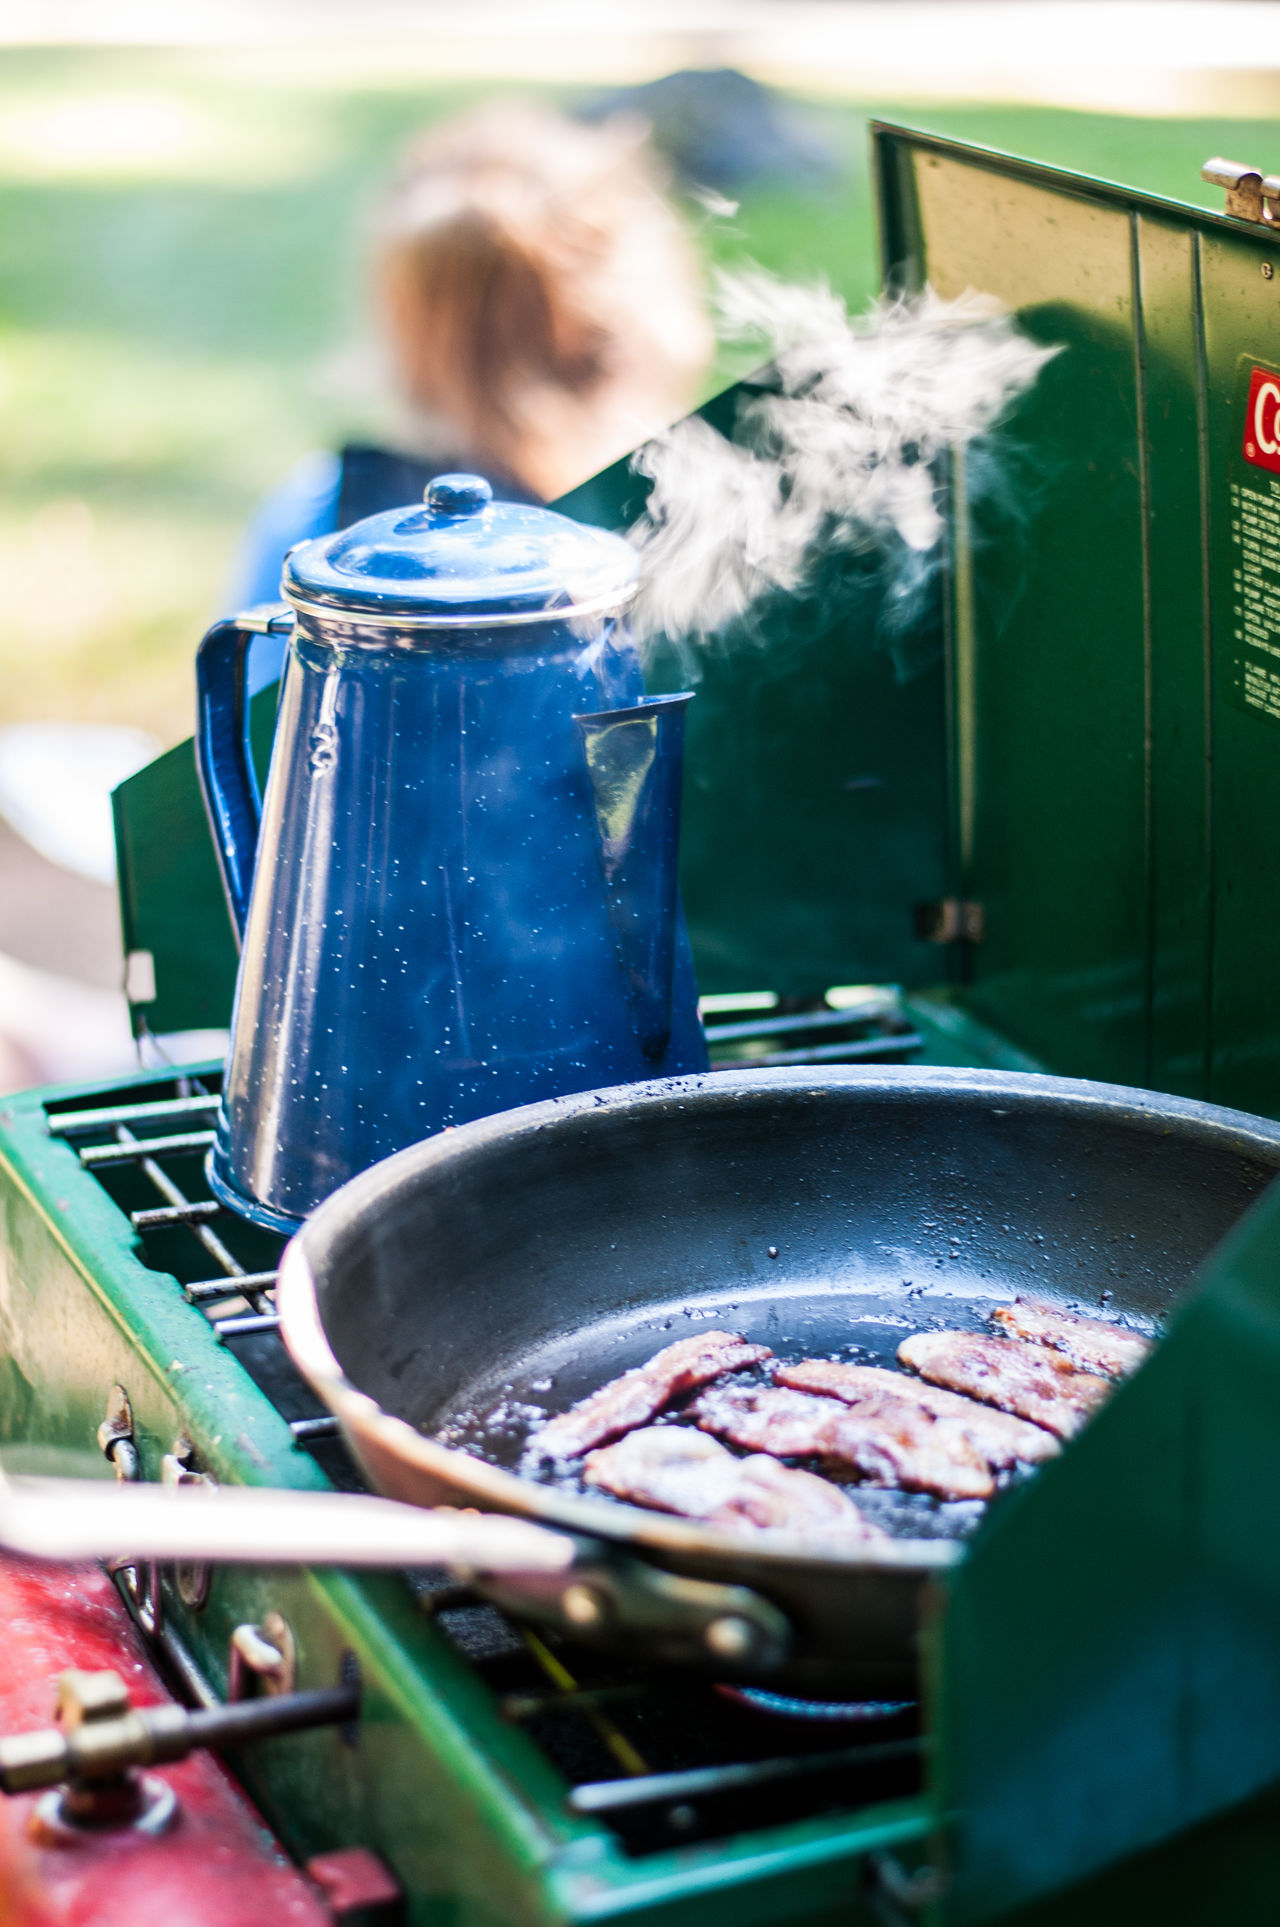 Adventure Backgrounds Bacon Camping Close-up Coffee Cooking Food Food And Drink Gas Lifestyle Outdoors Pan Pot Preparation  Stove